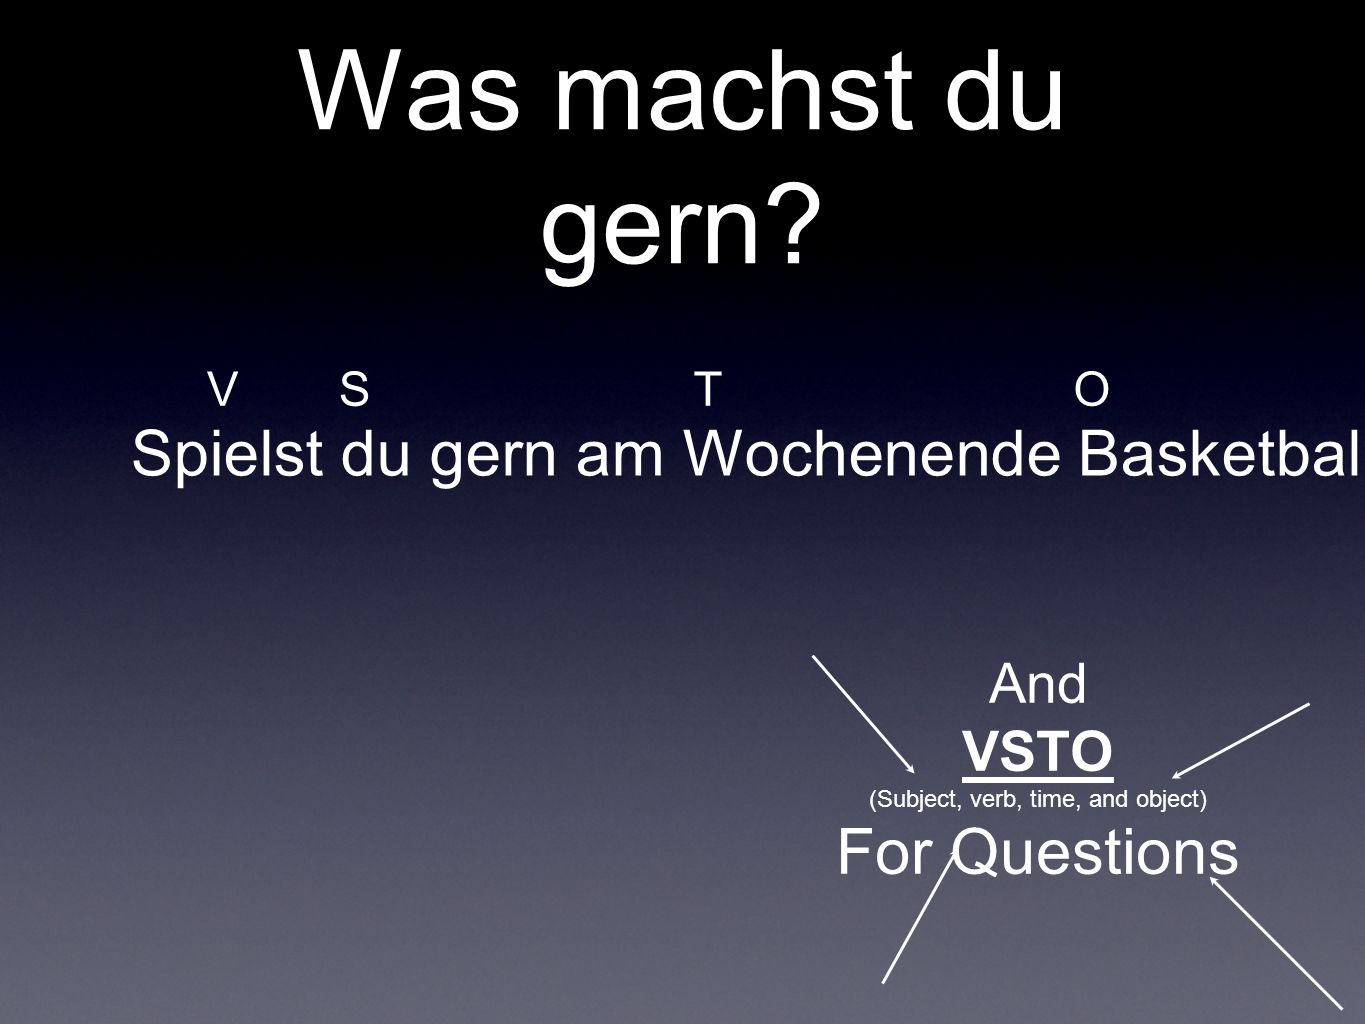 Was machst du gern? And VSTO (Subject, verb, time, and object) For Questions Spielst du gern am Wochenende Basketball SVTO